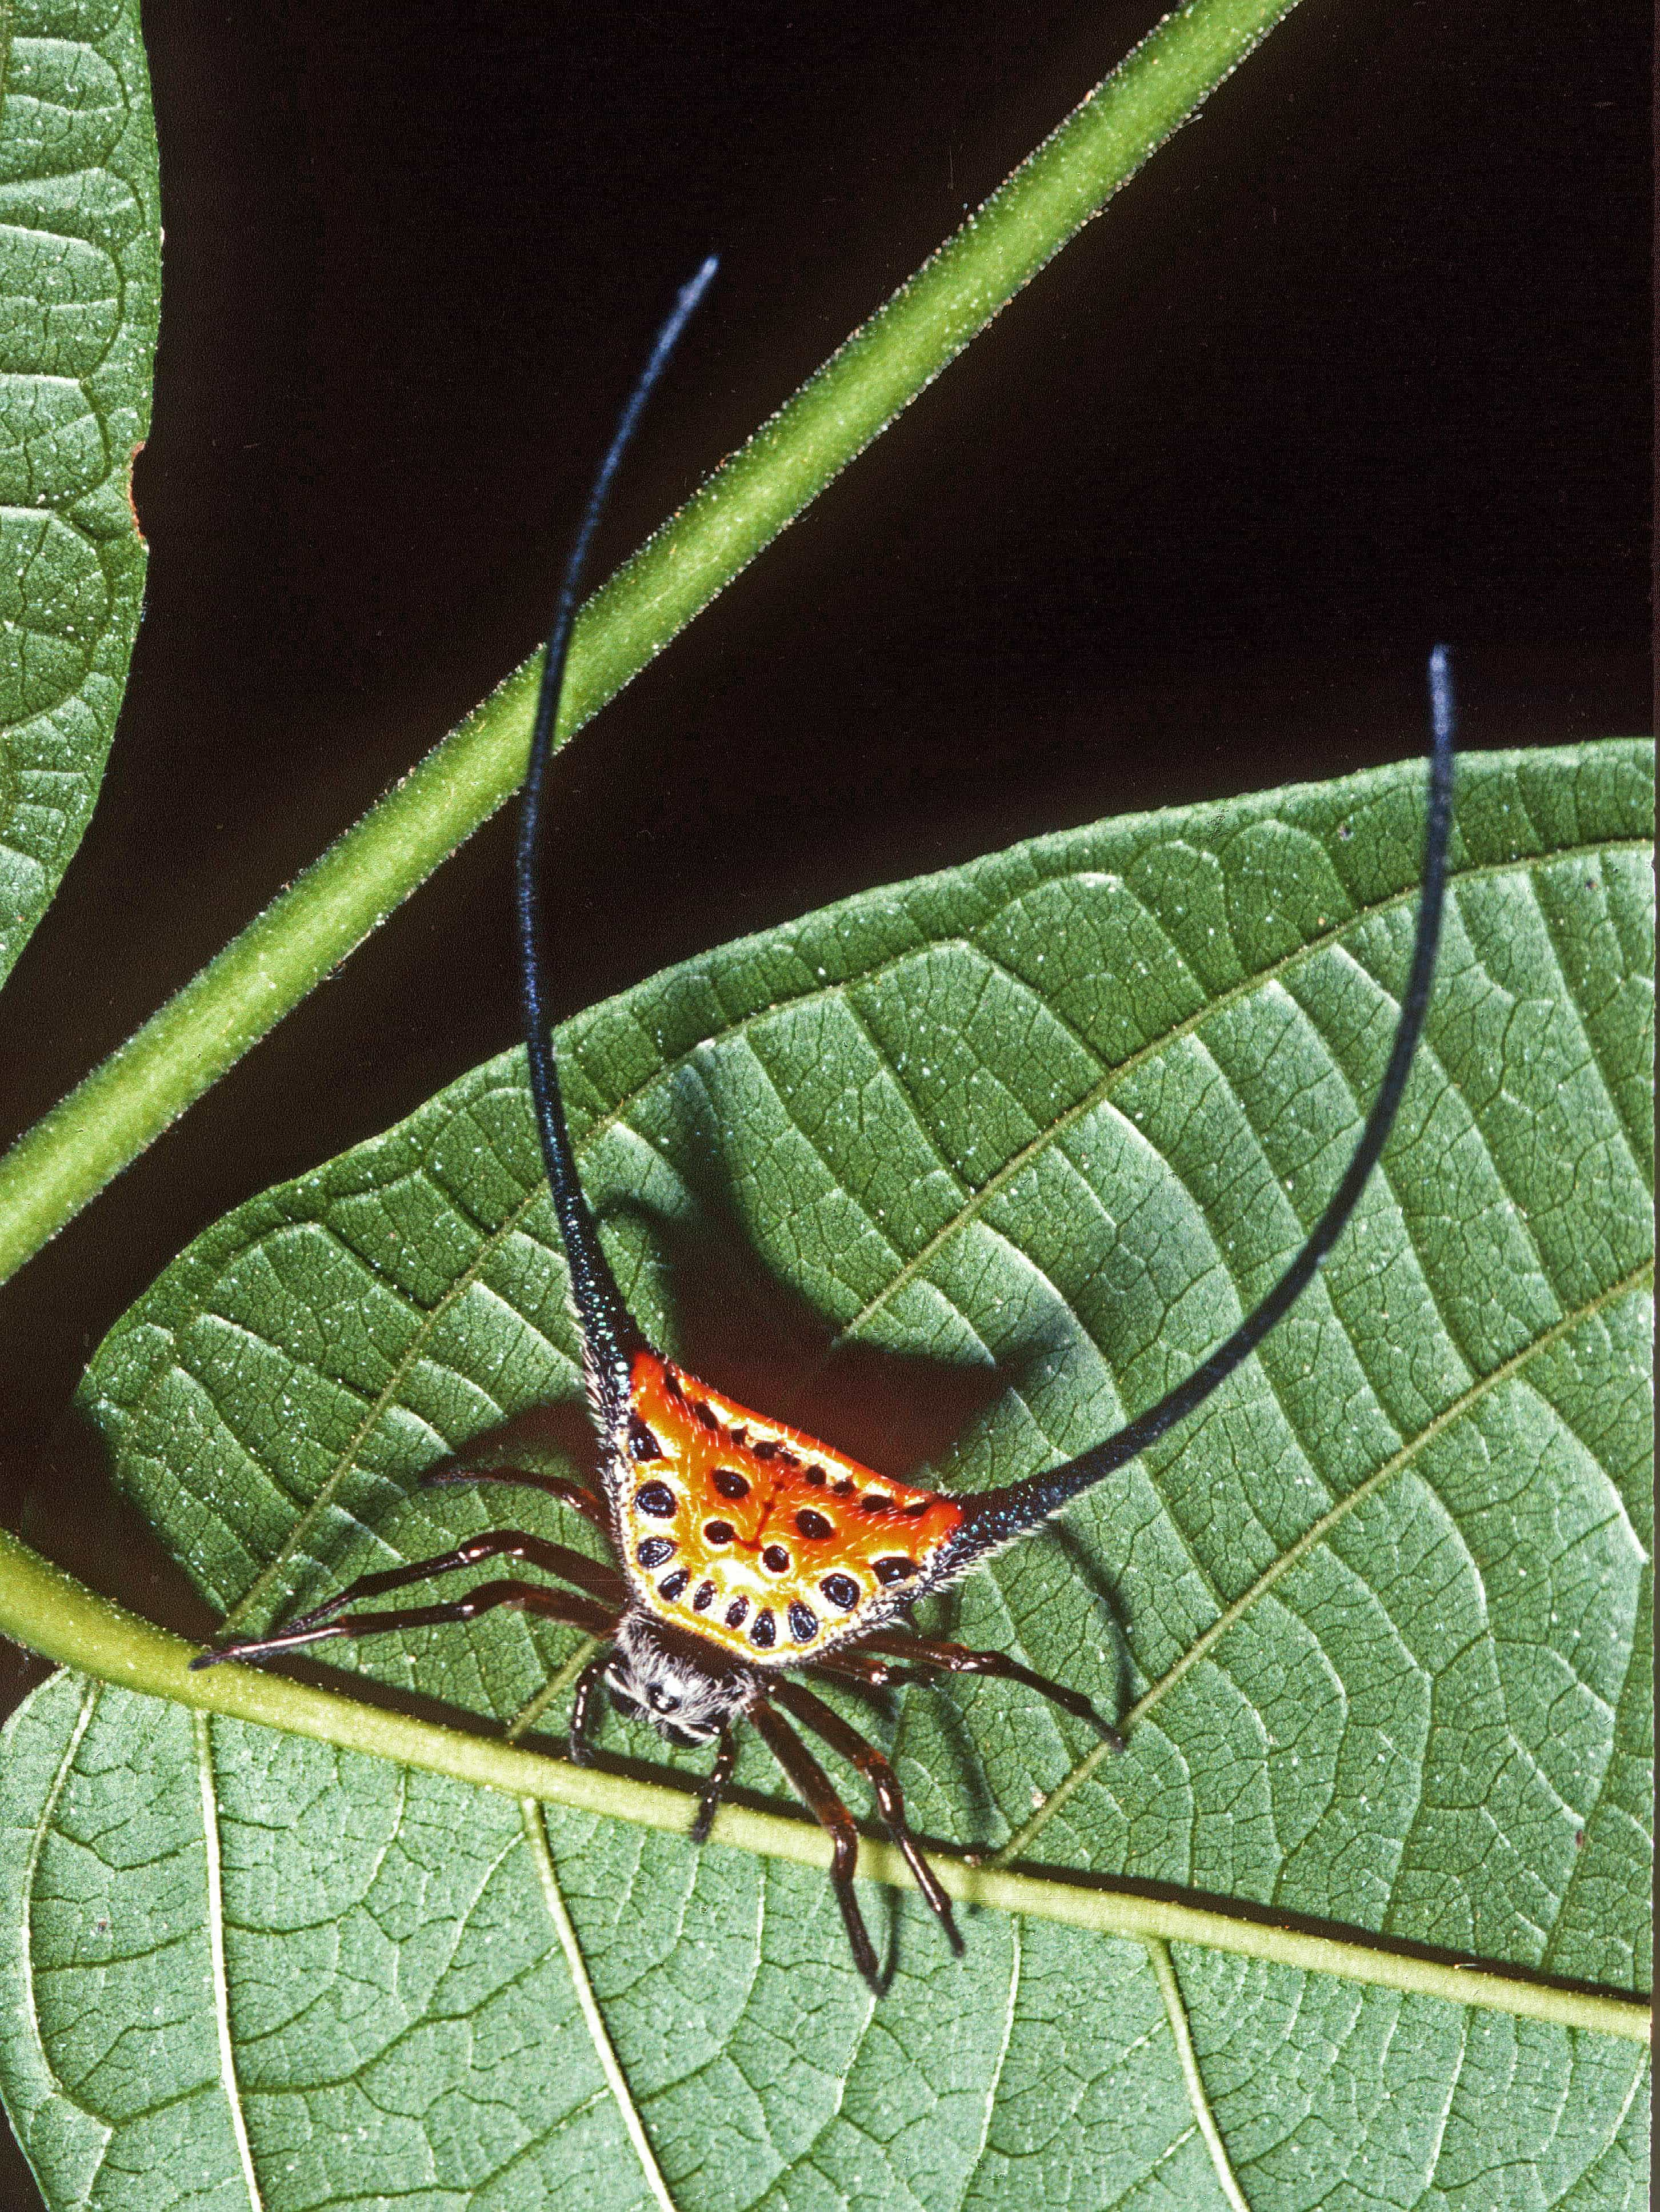 Picture of Macracantha arcuata (Long-horned Orb-weaver, Curved Spiny Spider) - Female - Dorsal